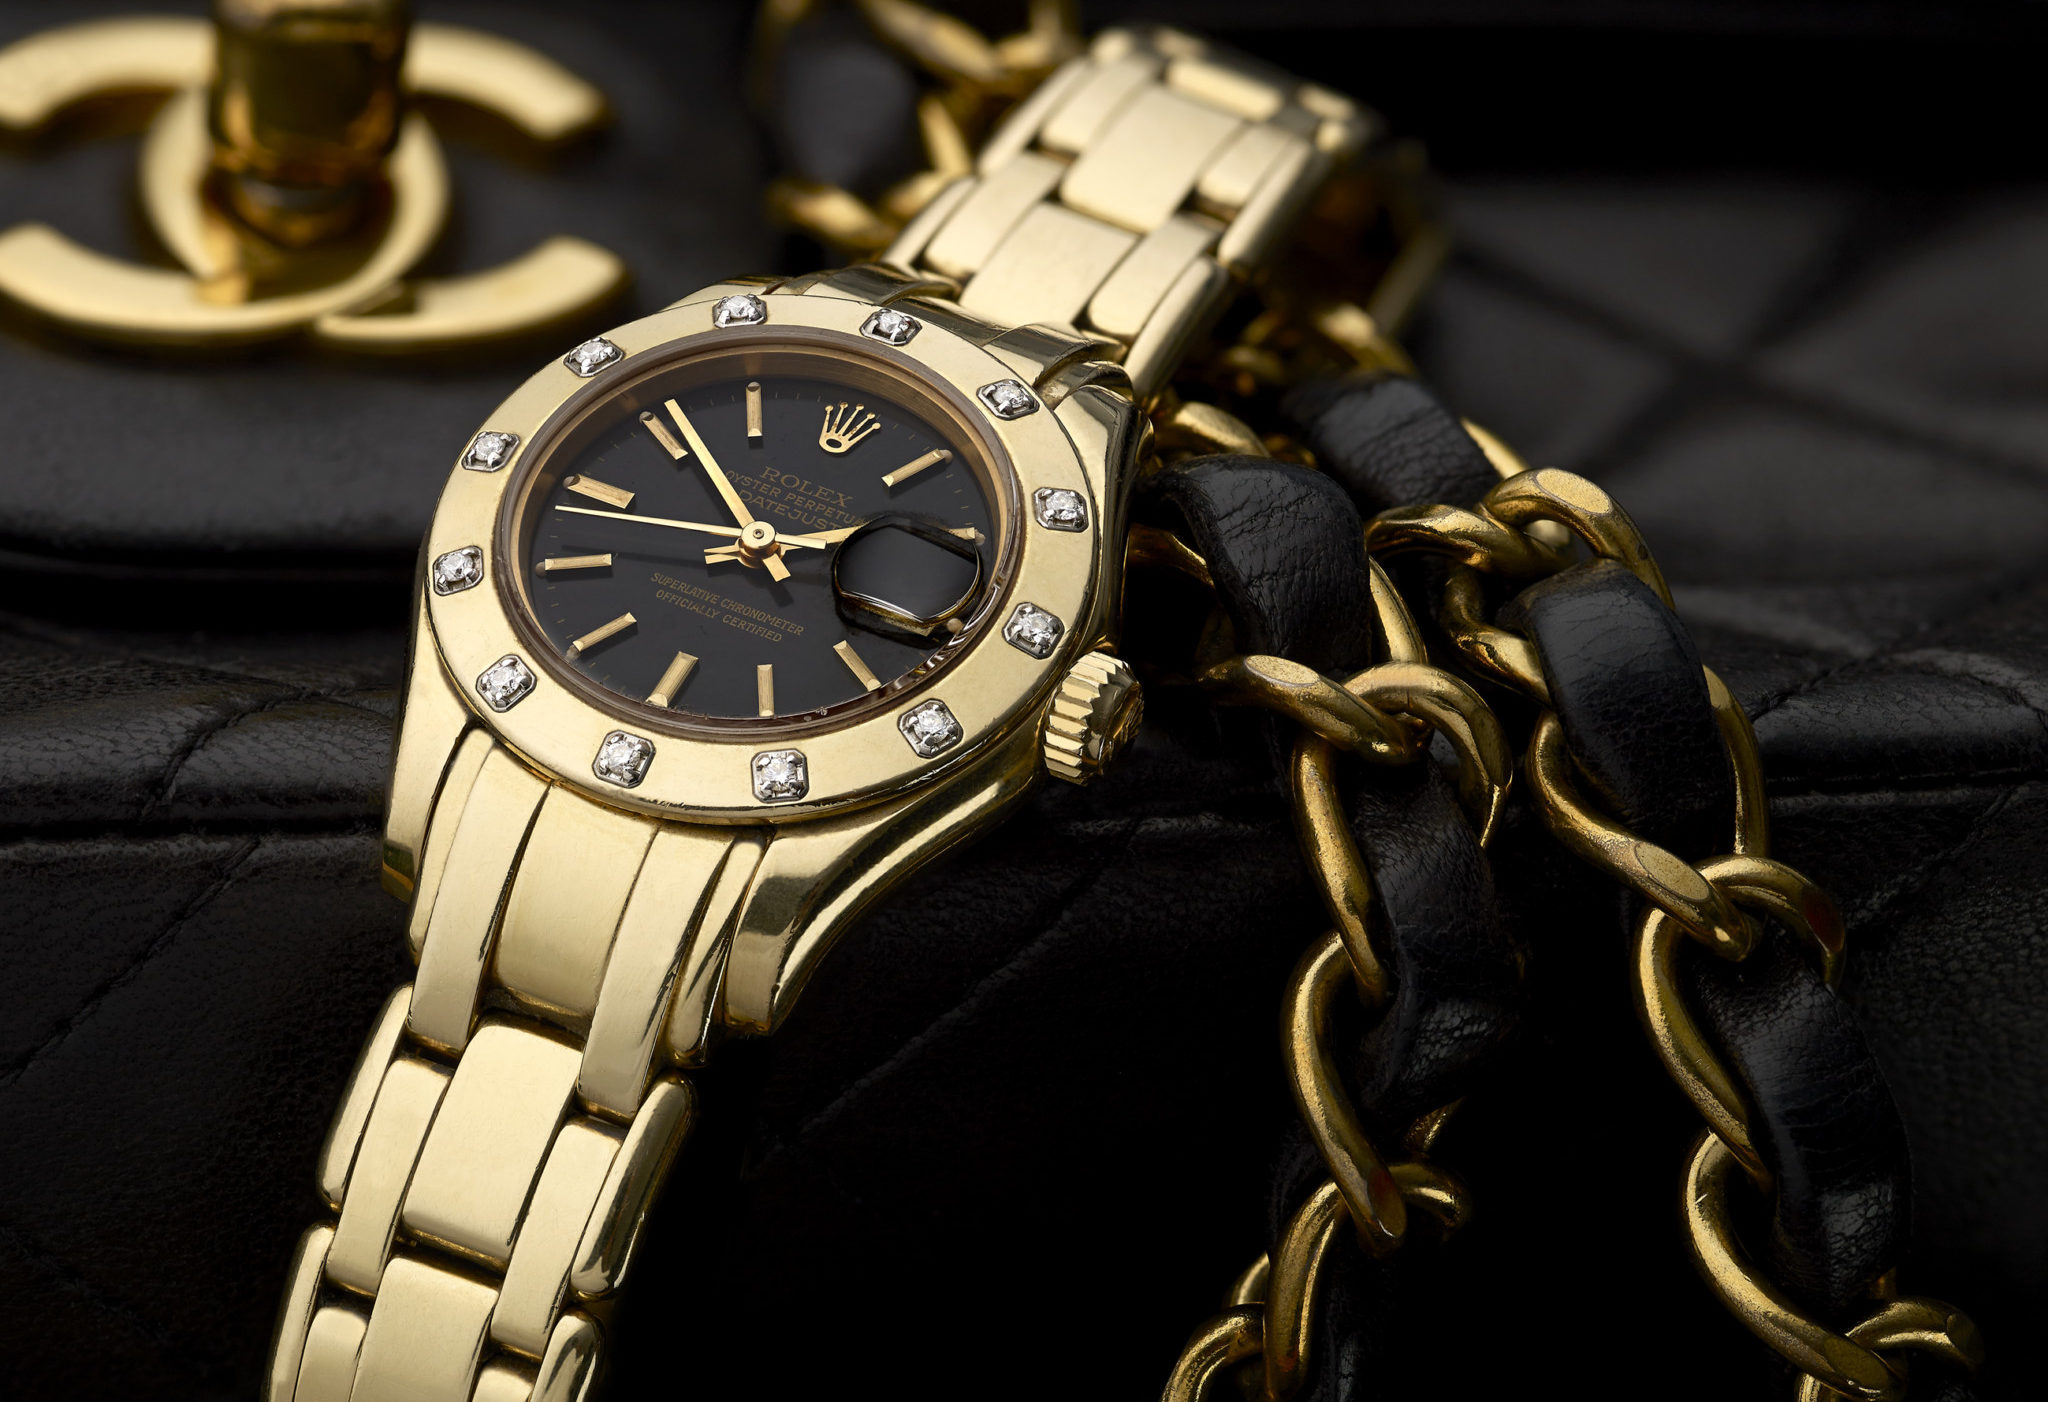 Time to Bid? Tips for Buying Watches at Auction